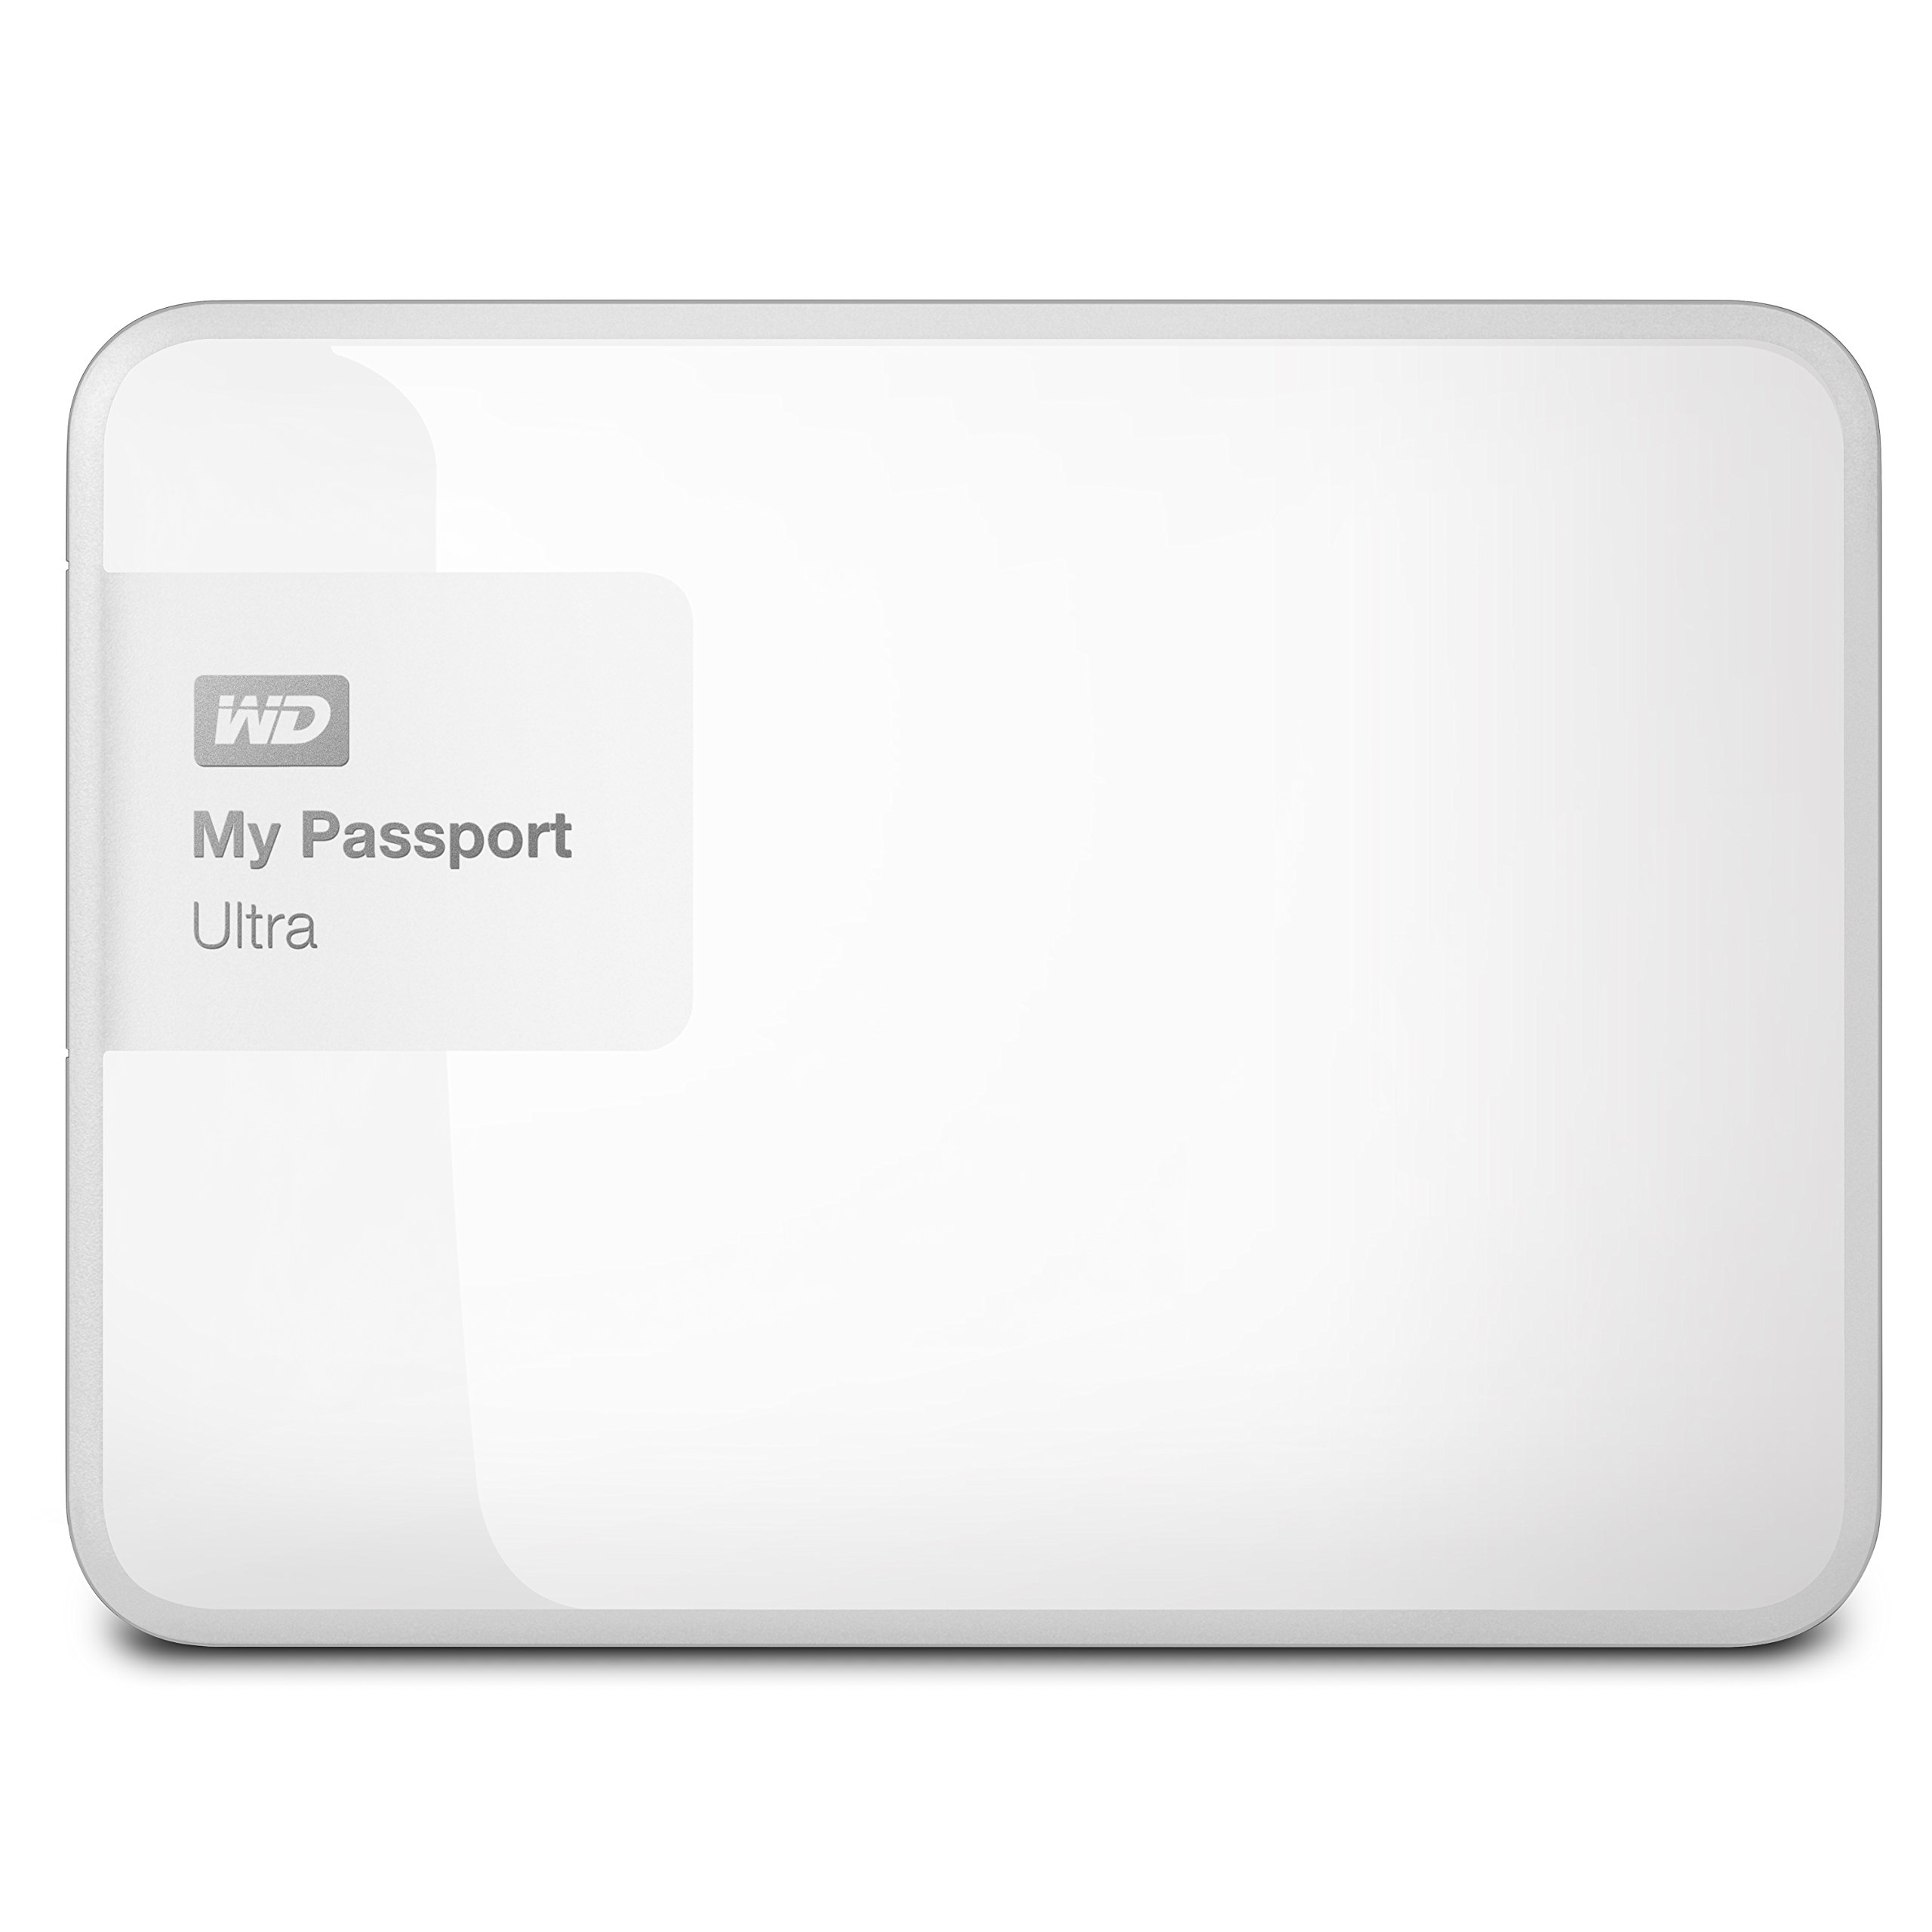 WD 1TB White My Passport Ultra Portable External Hard Drive - USB 3.0 - WDBGPU0010BWT-NESN [Old Model]